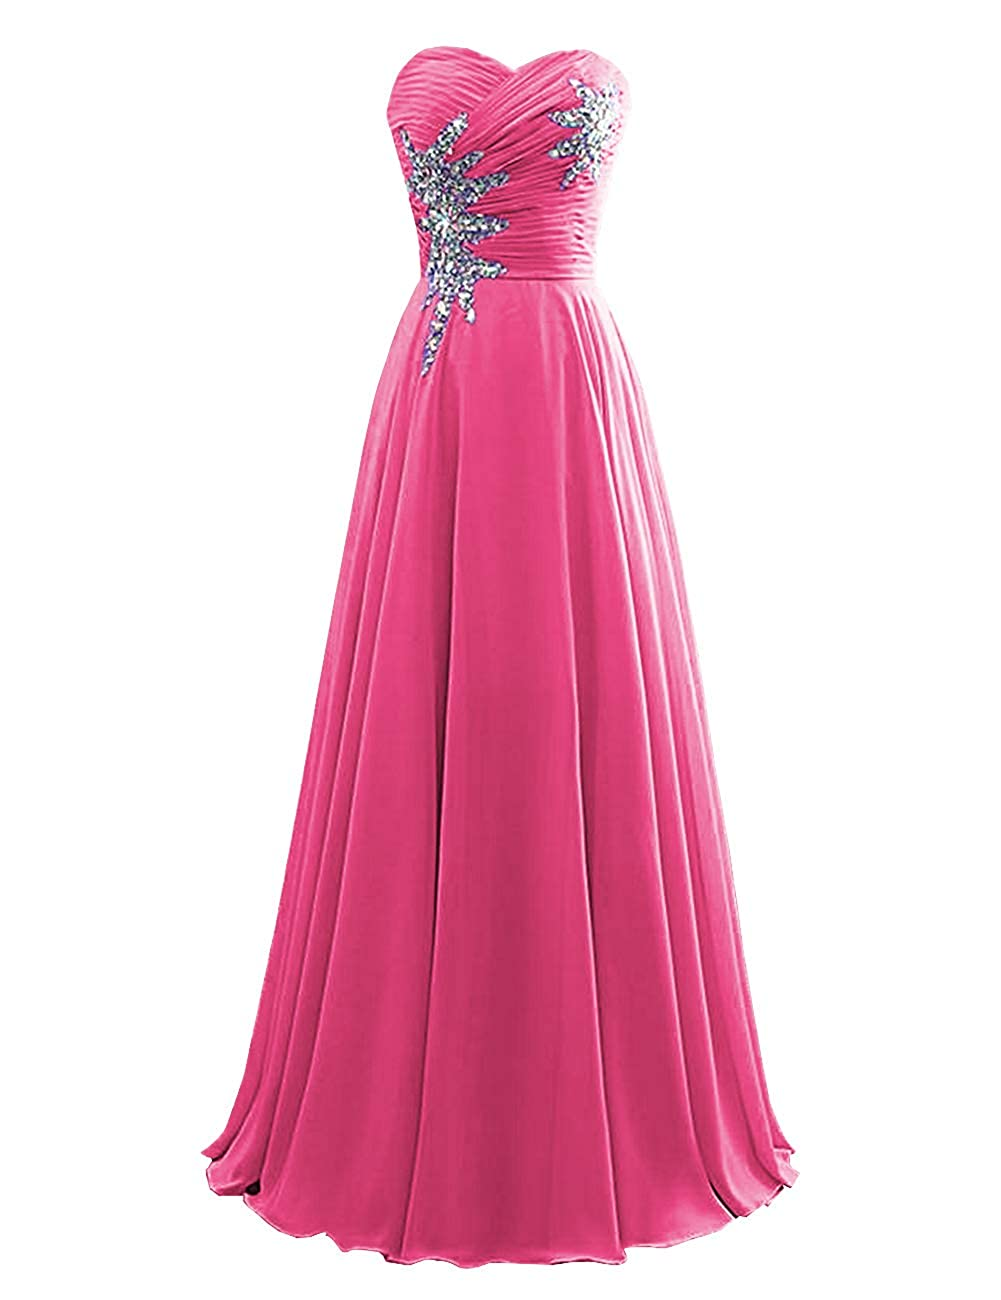 Hot Pink Women's Strapless Bridesmaid Dresses Beaded Prom Wedding Party Gowns